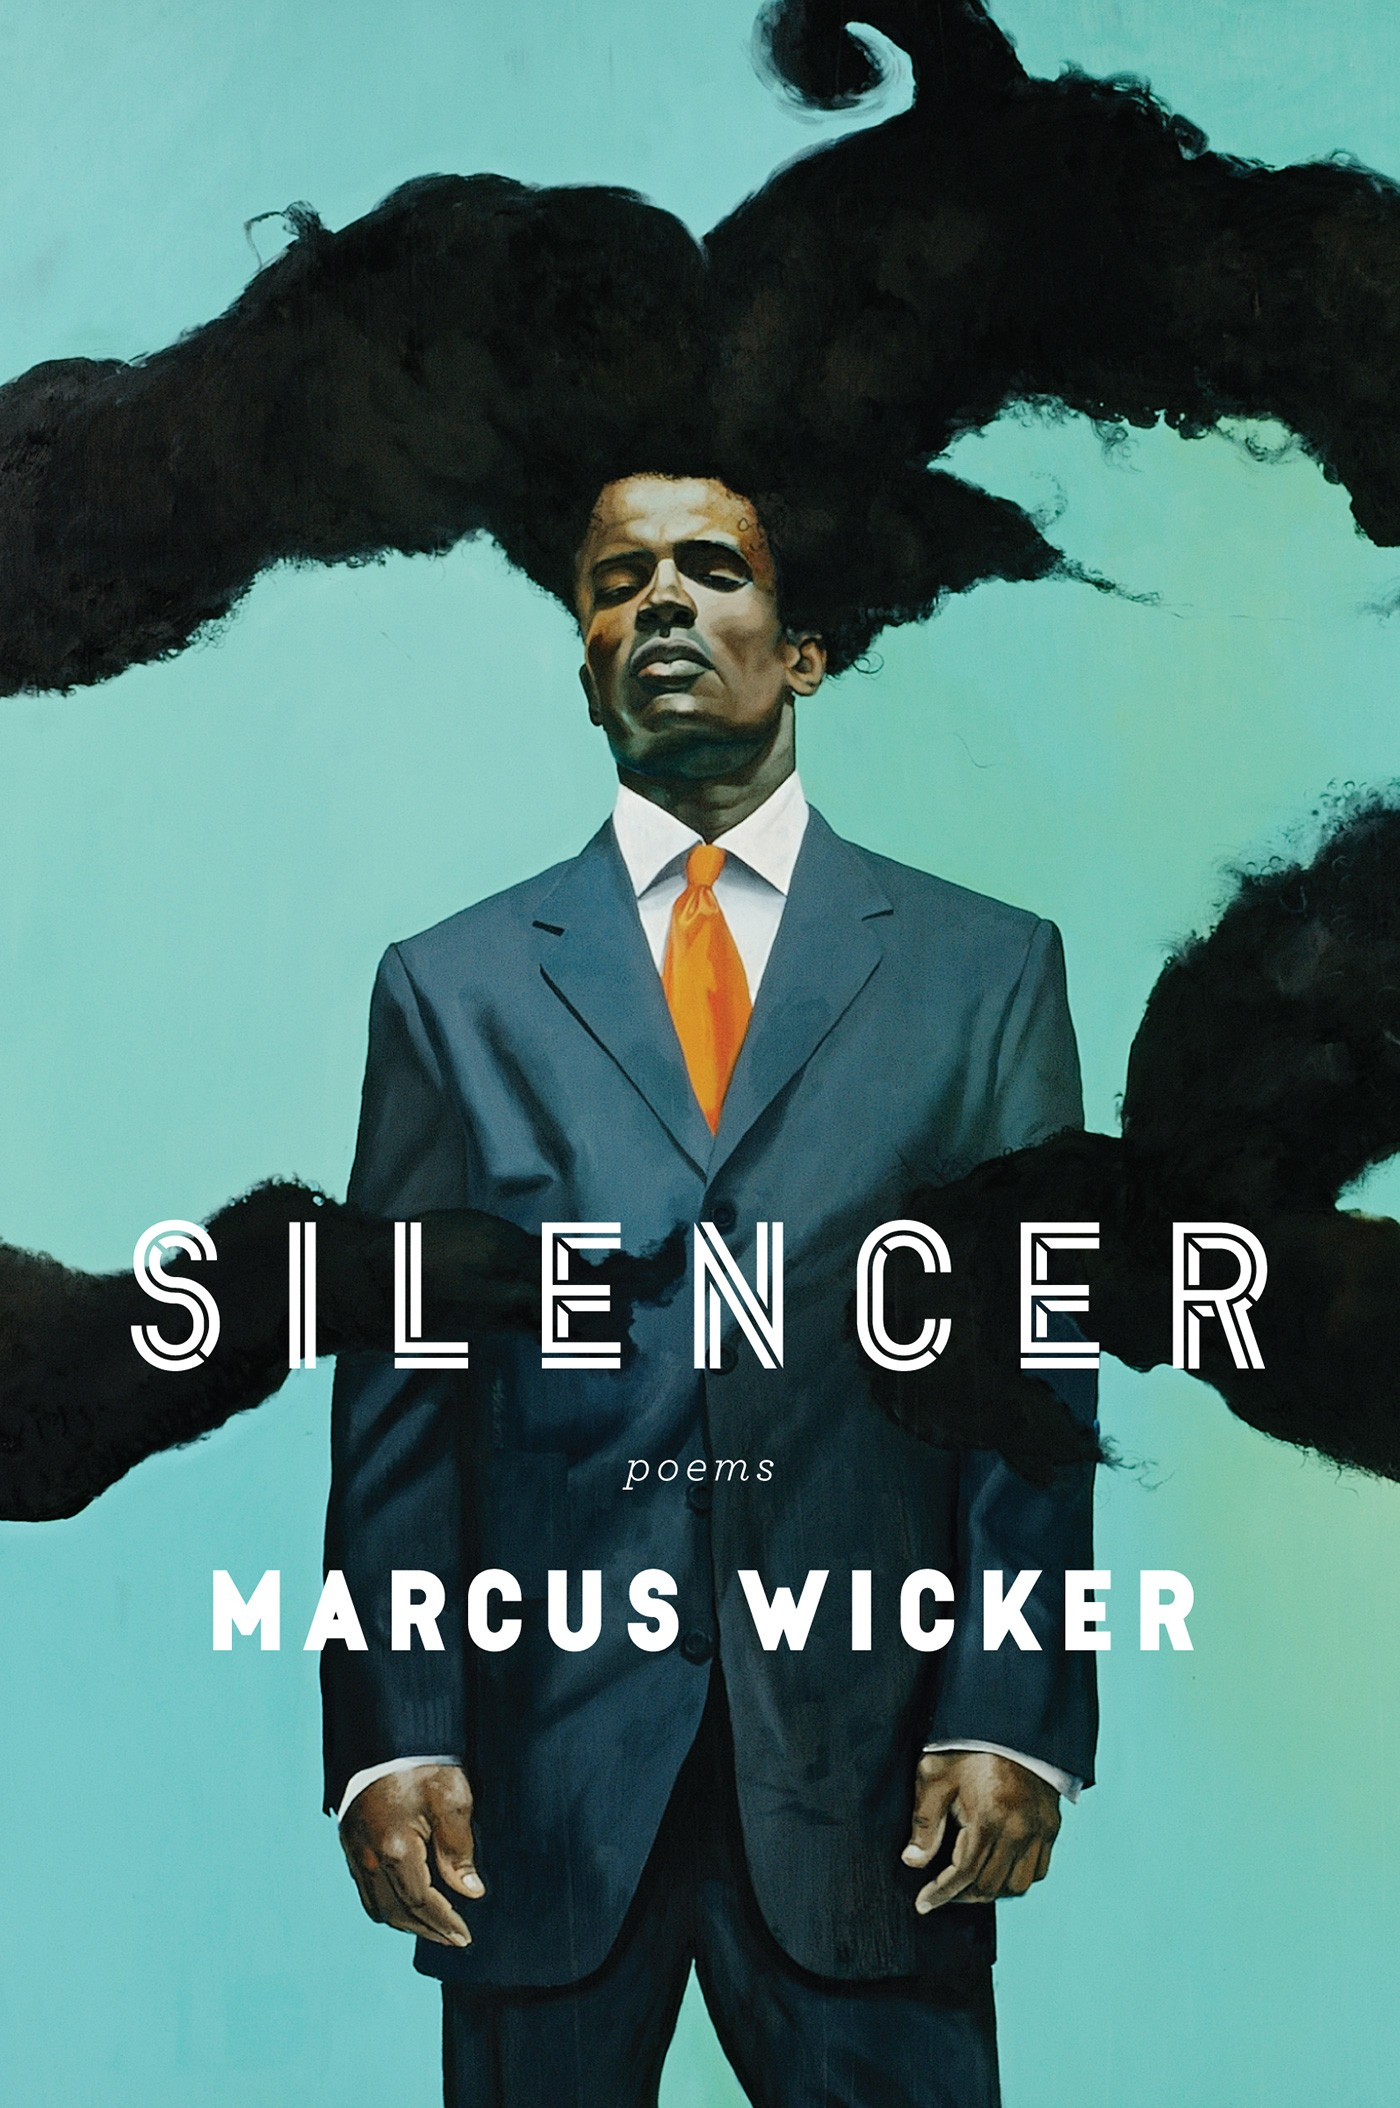 Book cover of silencer by Marcus Wicker